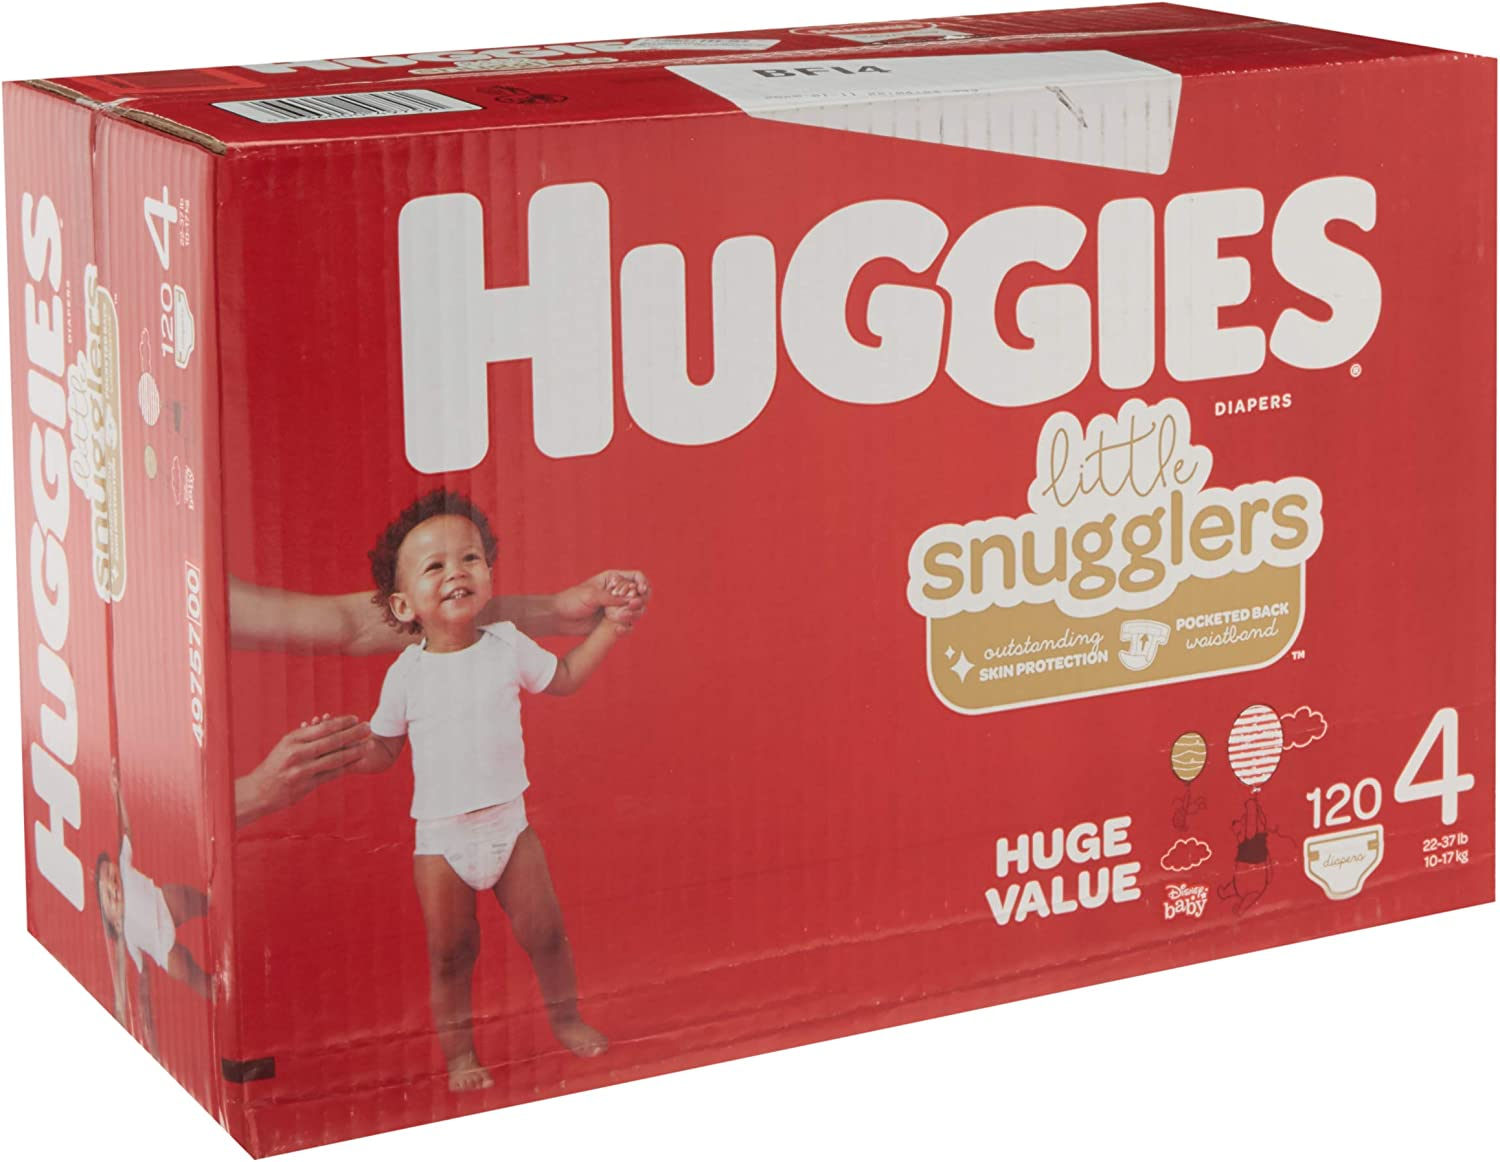 HUGGIES Little Snugglers Baby Diapers, Size 4 (22-37 Lb.), Huge Pack (Packaging May Vary), 120 Count